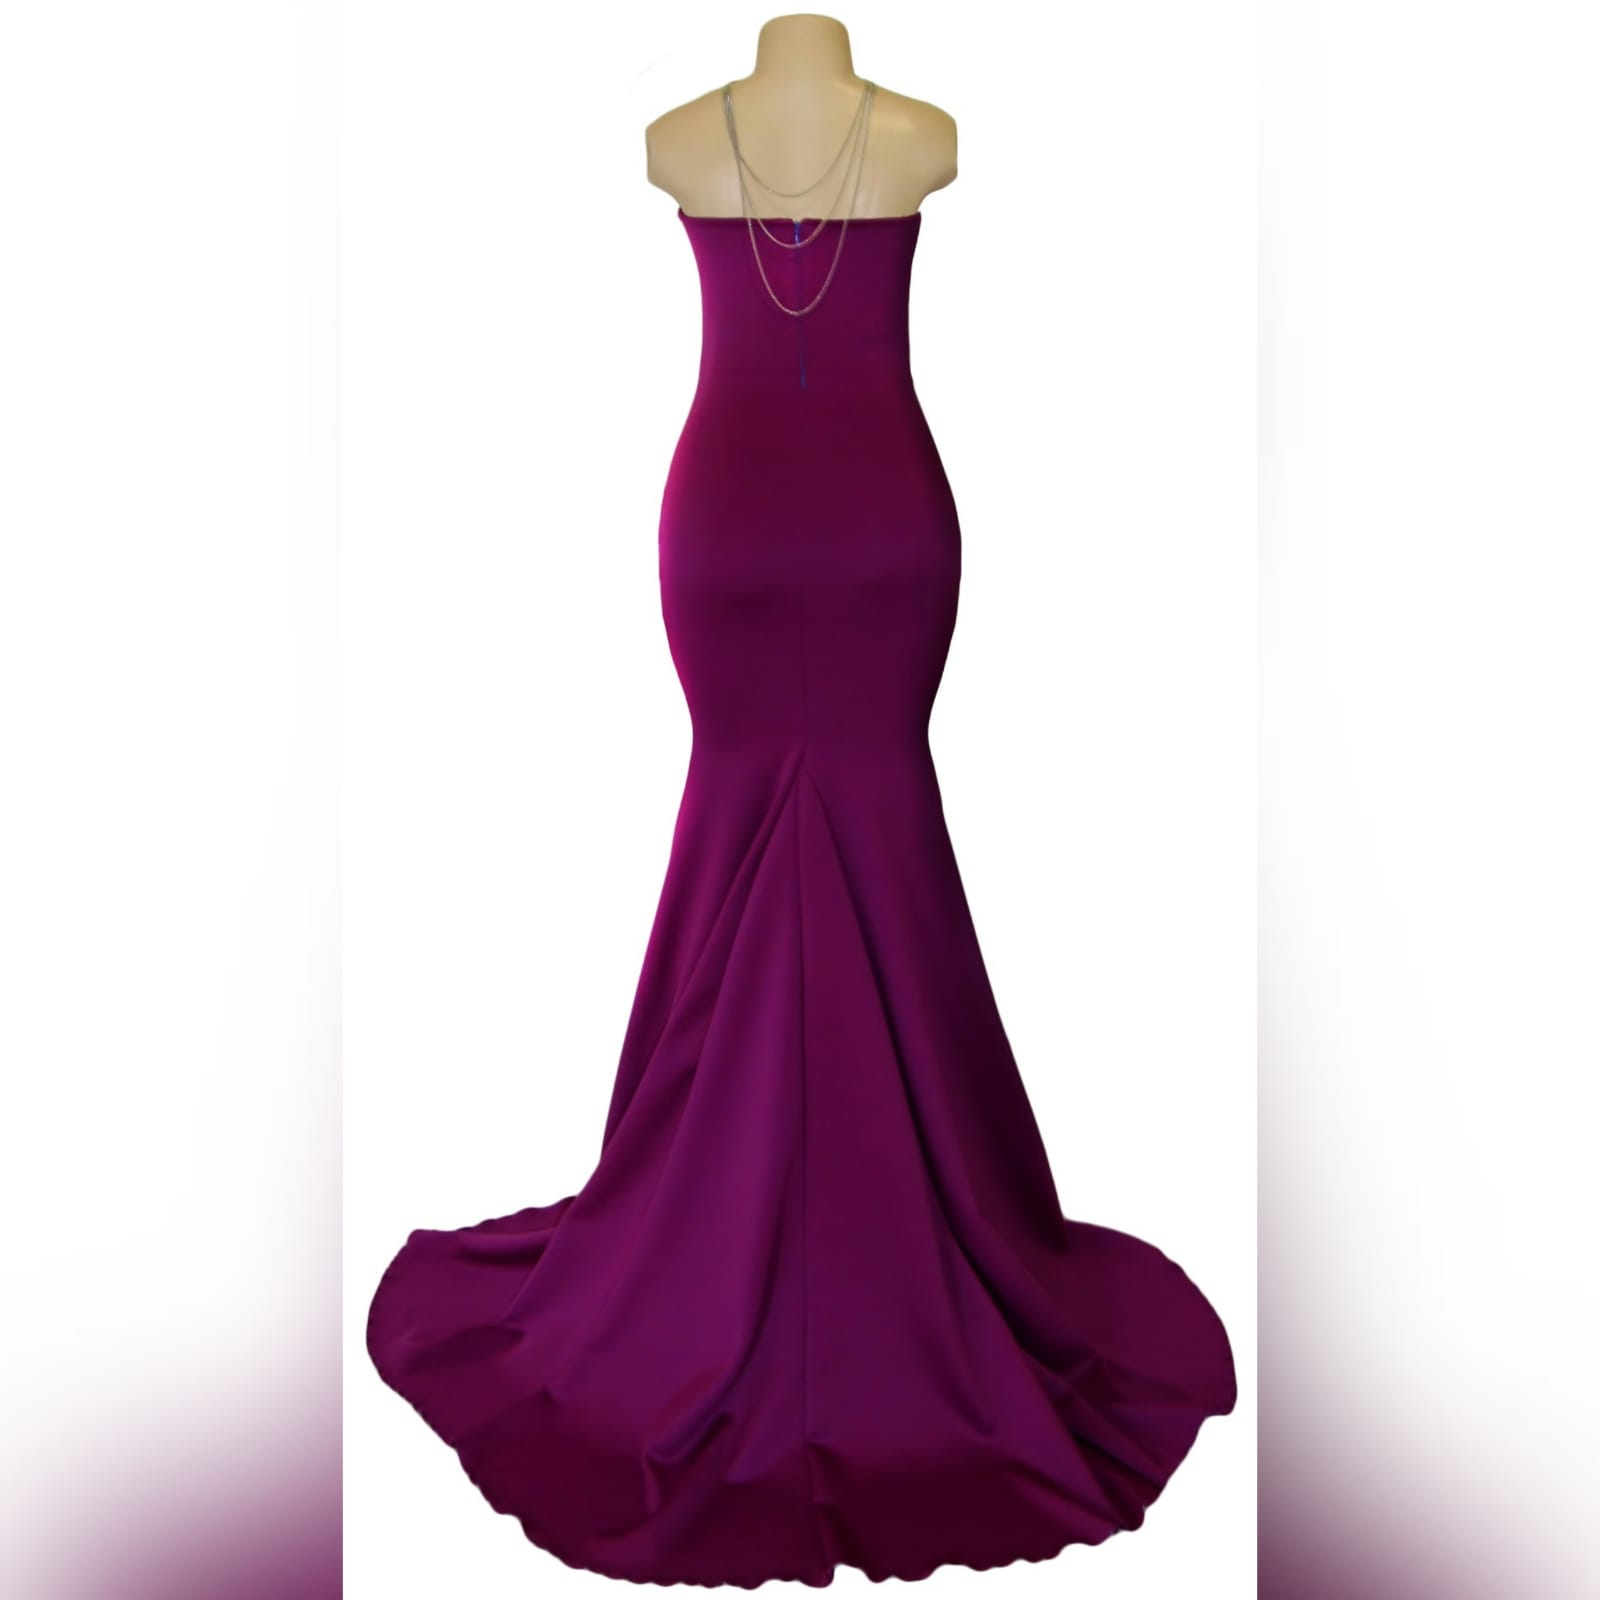 Fuschia soft mermaid tube evening dress 2 fuschia soft mermaid tube evening dress.   with a sweetheart neckline, straight back and a train. Excludes accessory.